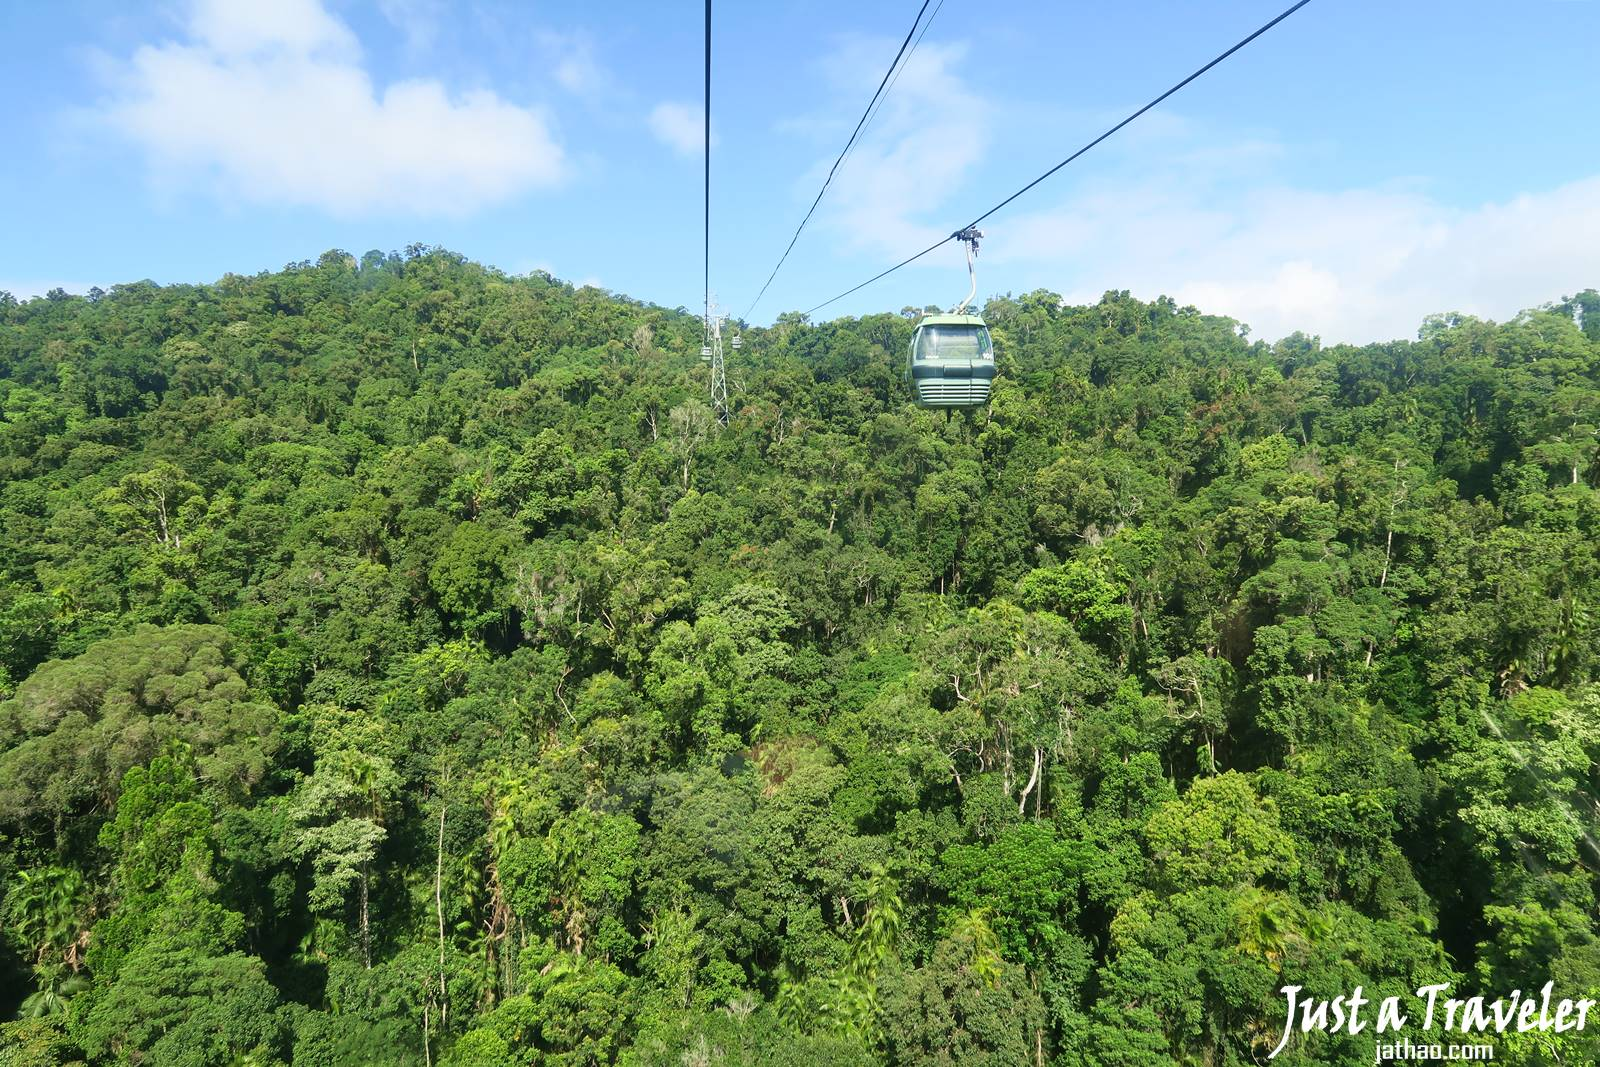 凱恩斯-庫蘭達-交通-觀光纜車-自由行-旅遊-澳洲-Cairns-Kuranda-Skyrail-Rainforest-Cableway-Travel-Tourist-Attraction-Australia